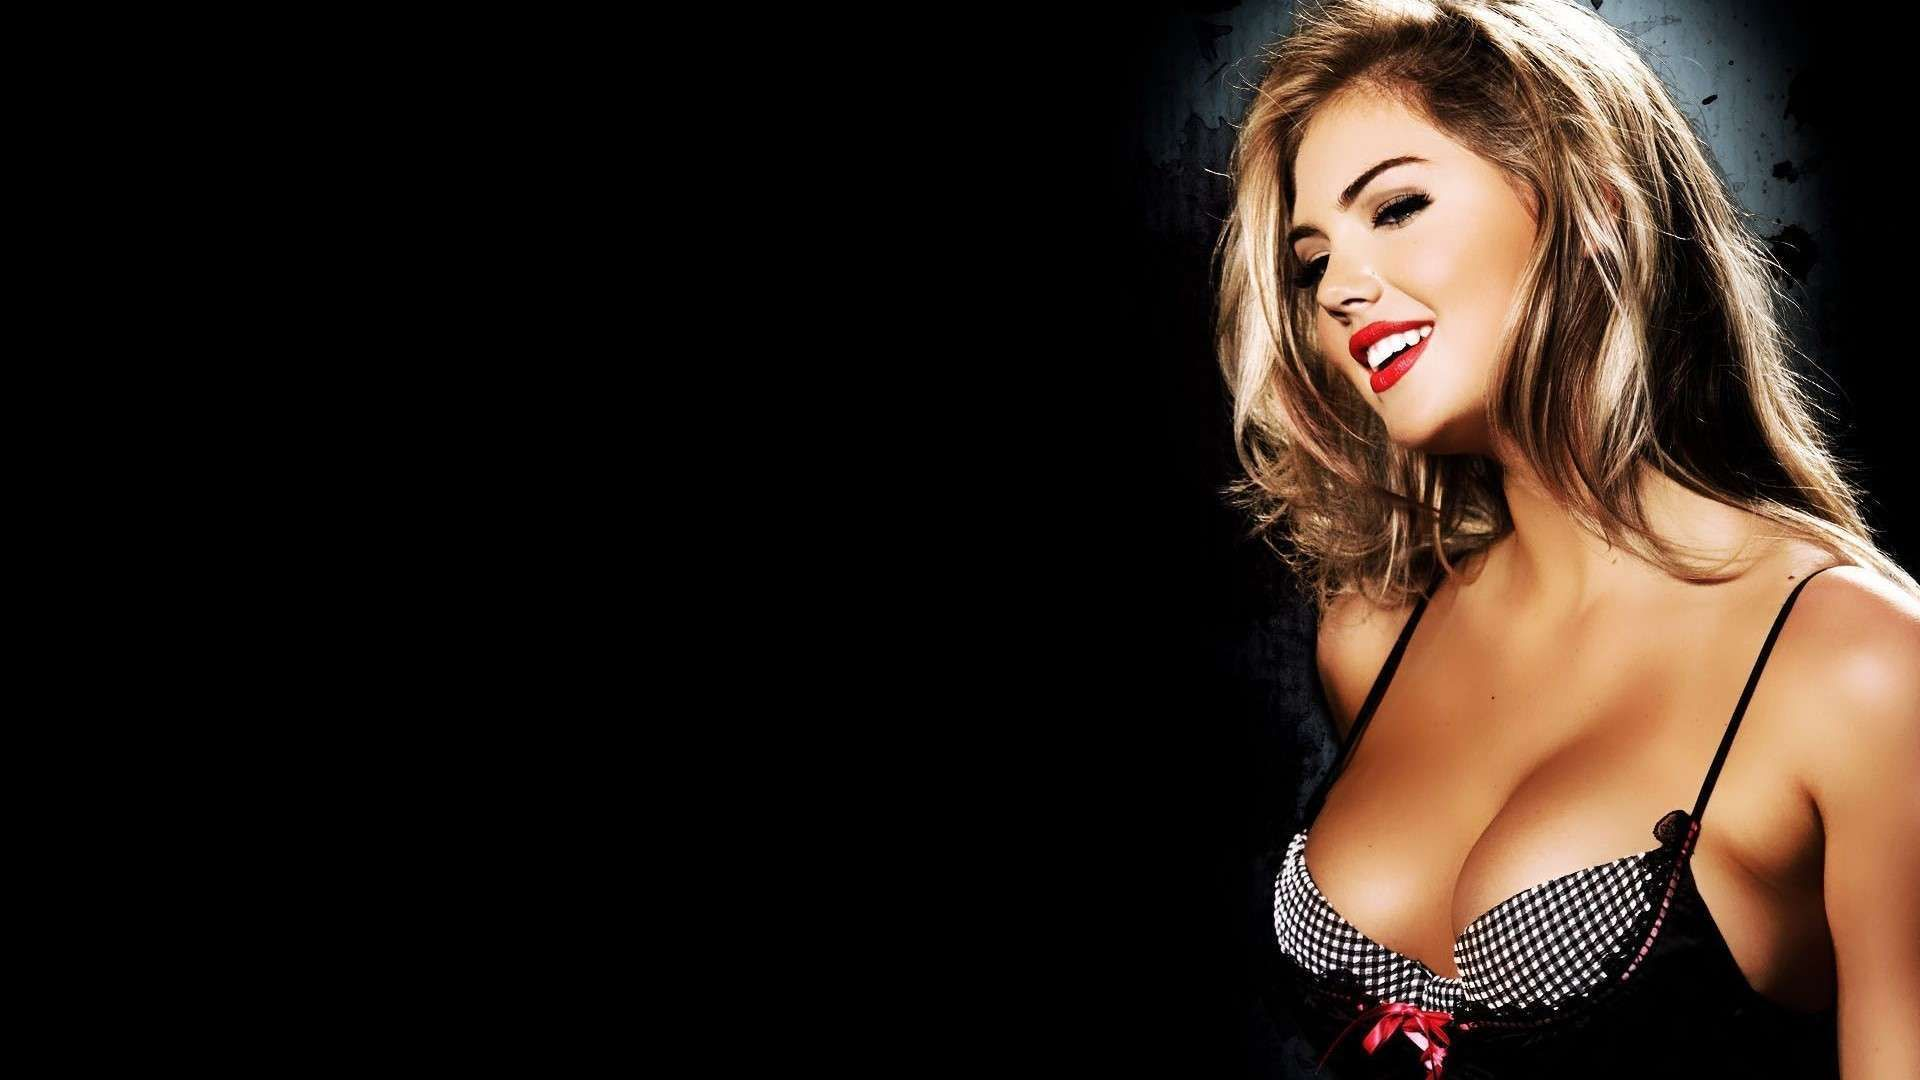 Kate upton hot wallpapers kateupton hot sexy babes female kate upton hot wallpapers kateupton hot sexy babes voltagebd Images